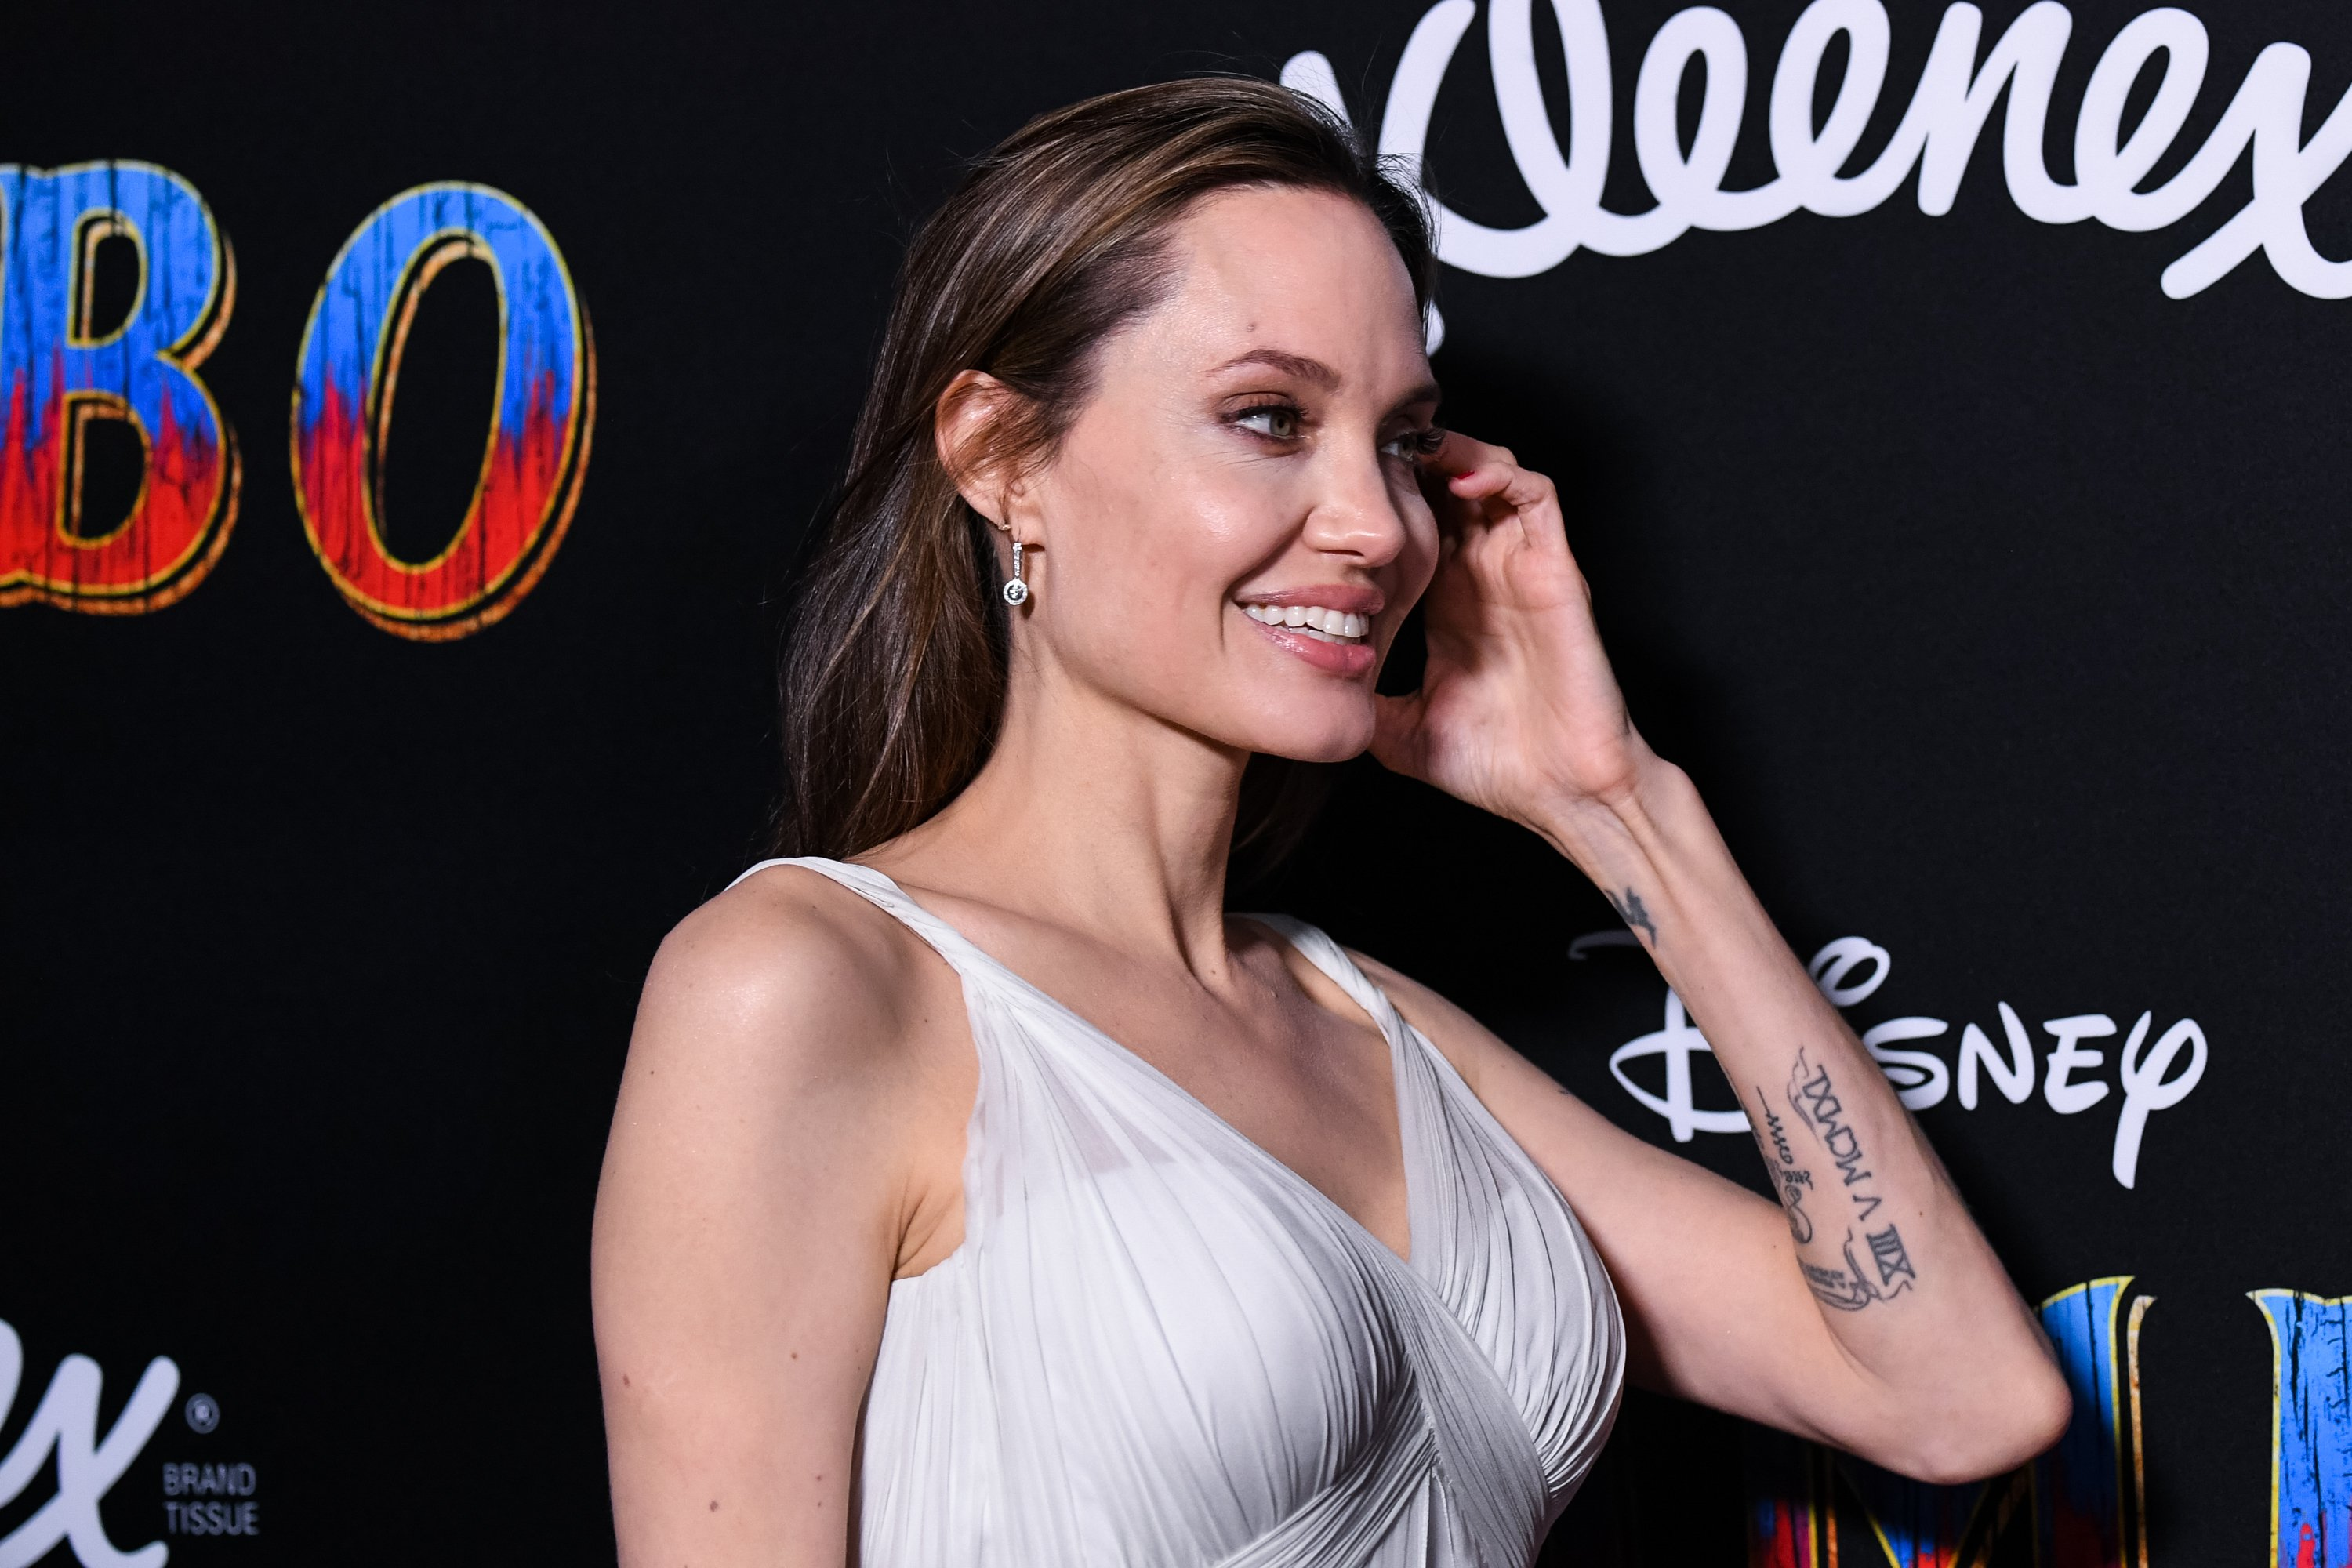 """Angelina Jolie attends the premiere of Disney's """"Dumbo"""" in Los Angeles, California on March 11, 2019 